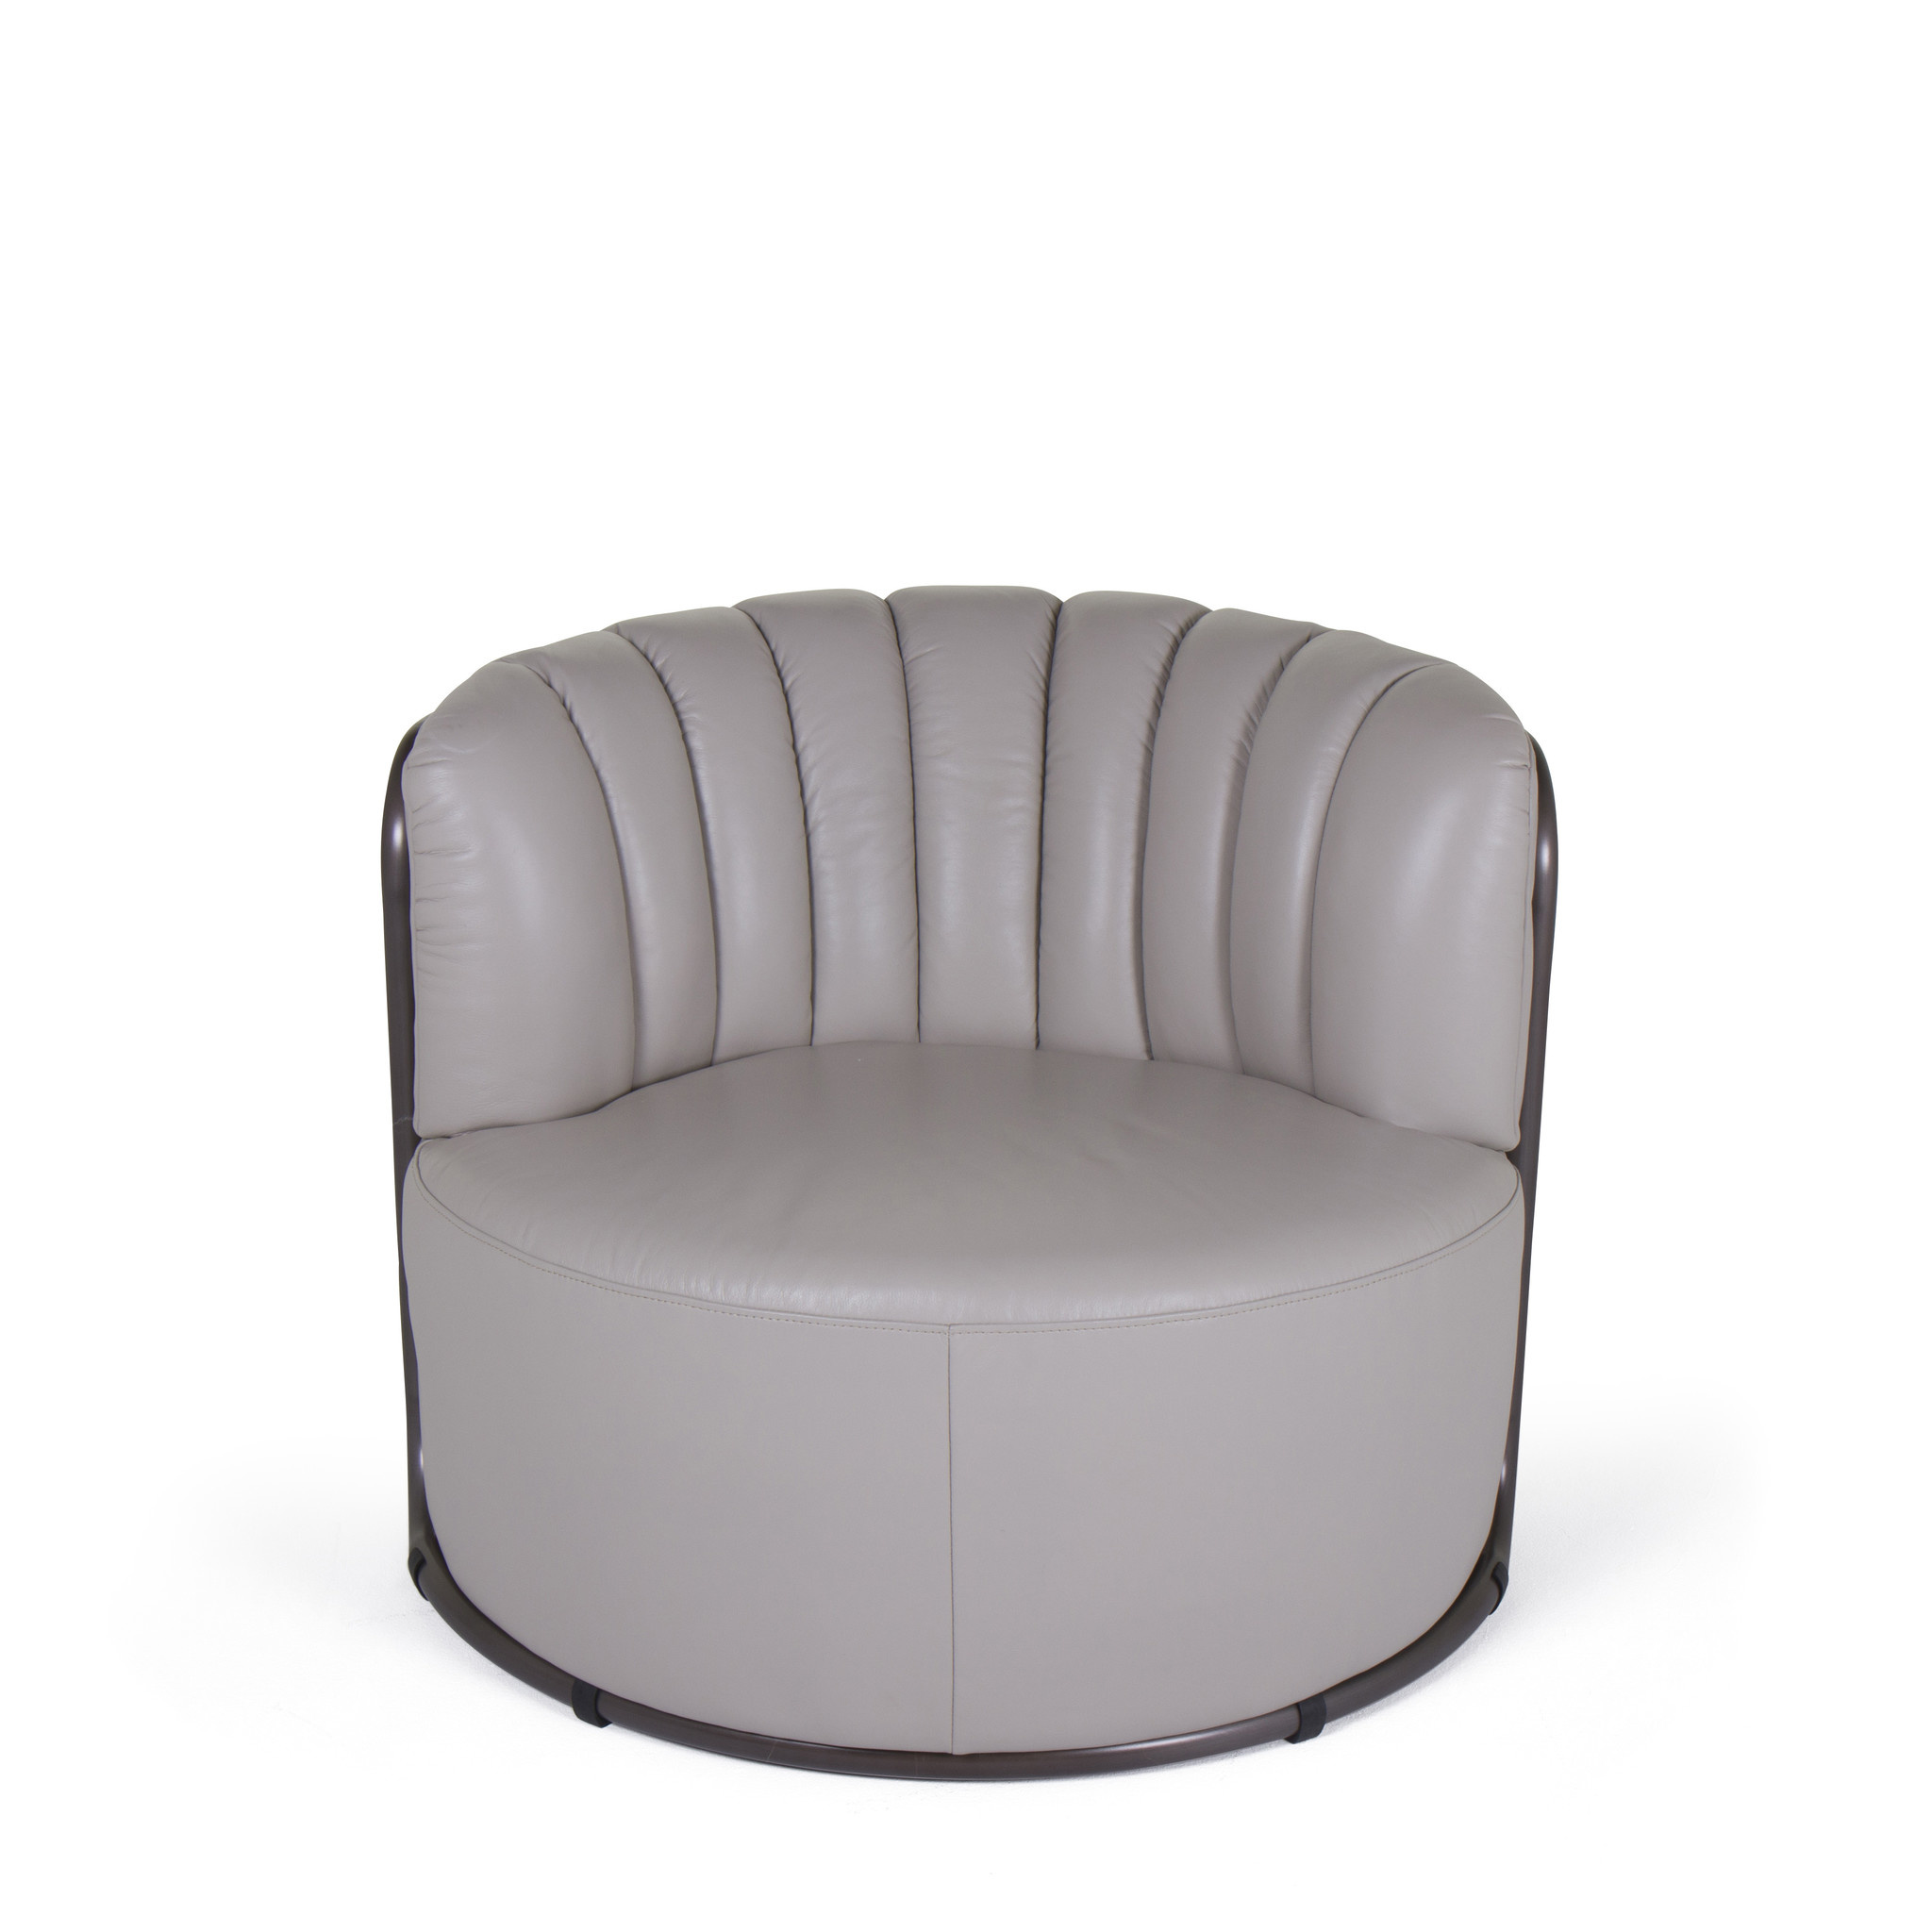 MONTI Arm Chair Cappuccino White Leather-2